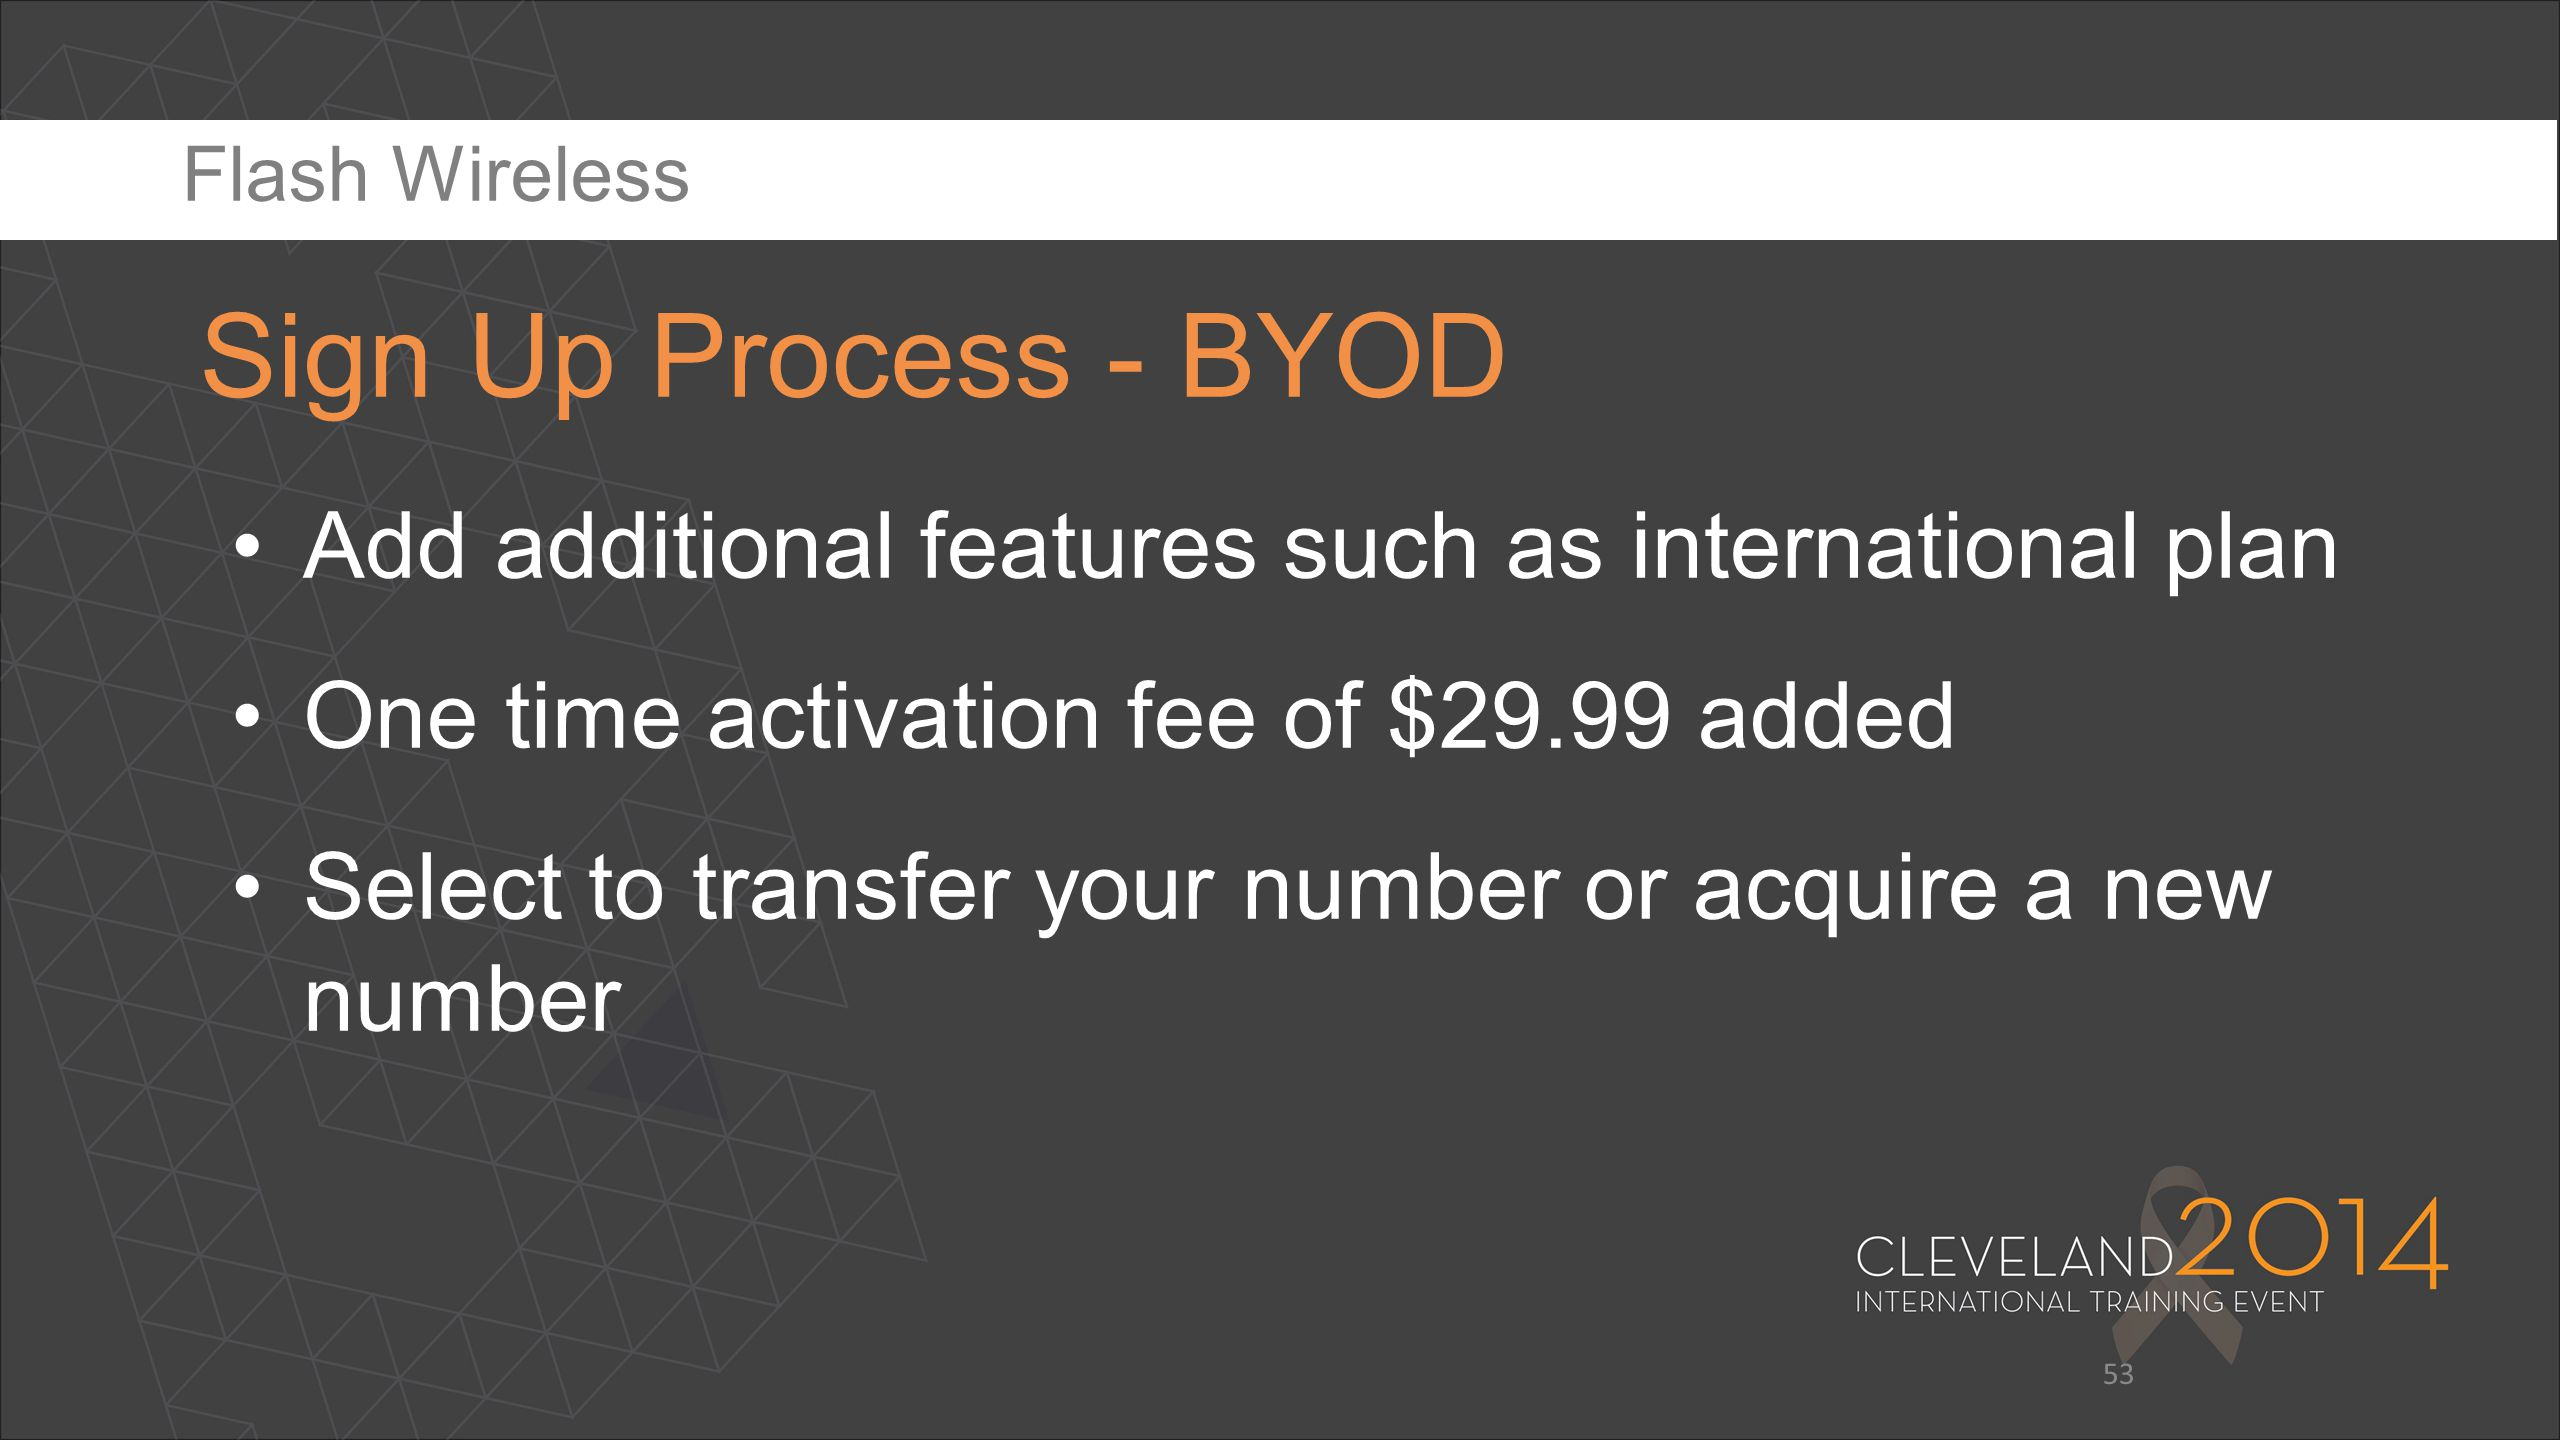 Flash Wireless Sign Up Process - BYOD. Add additional features such as international plan. One time activation fee of $29.99 added.